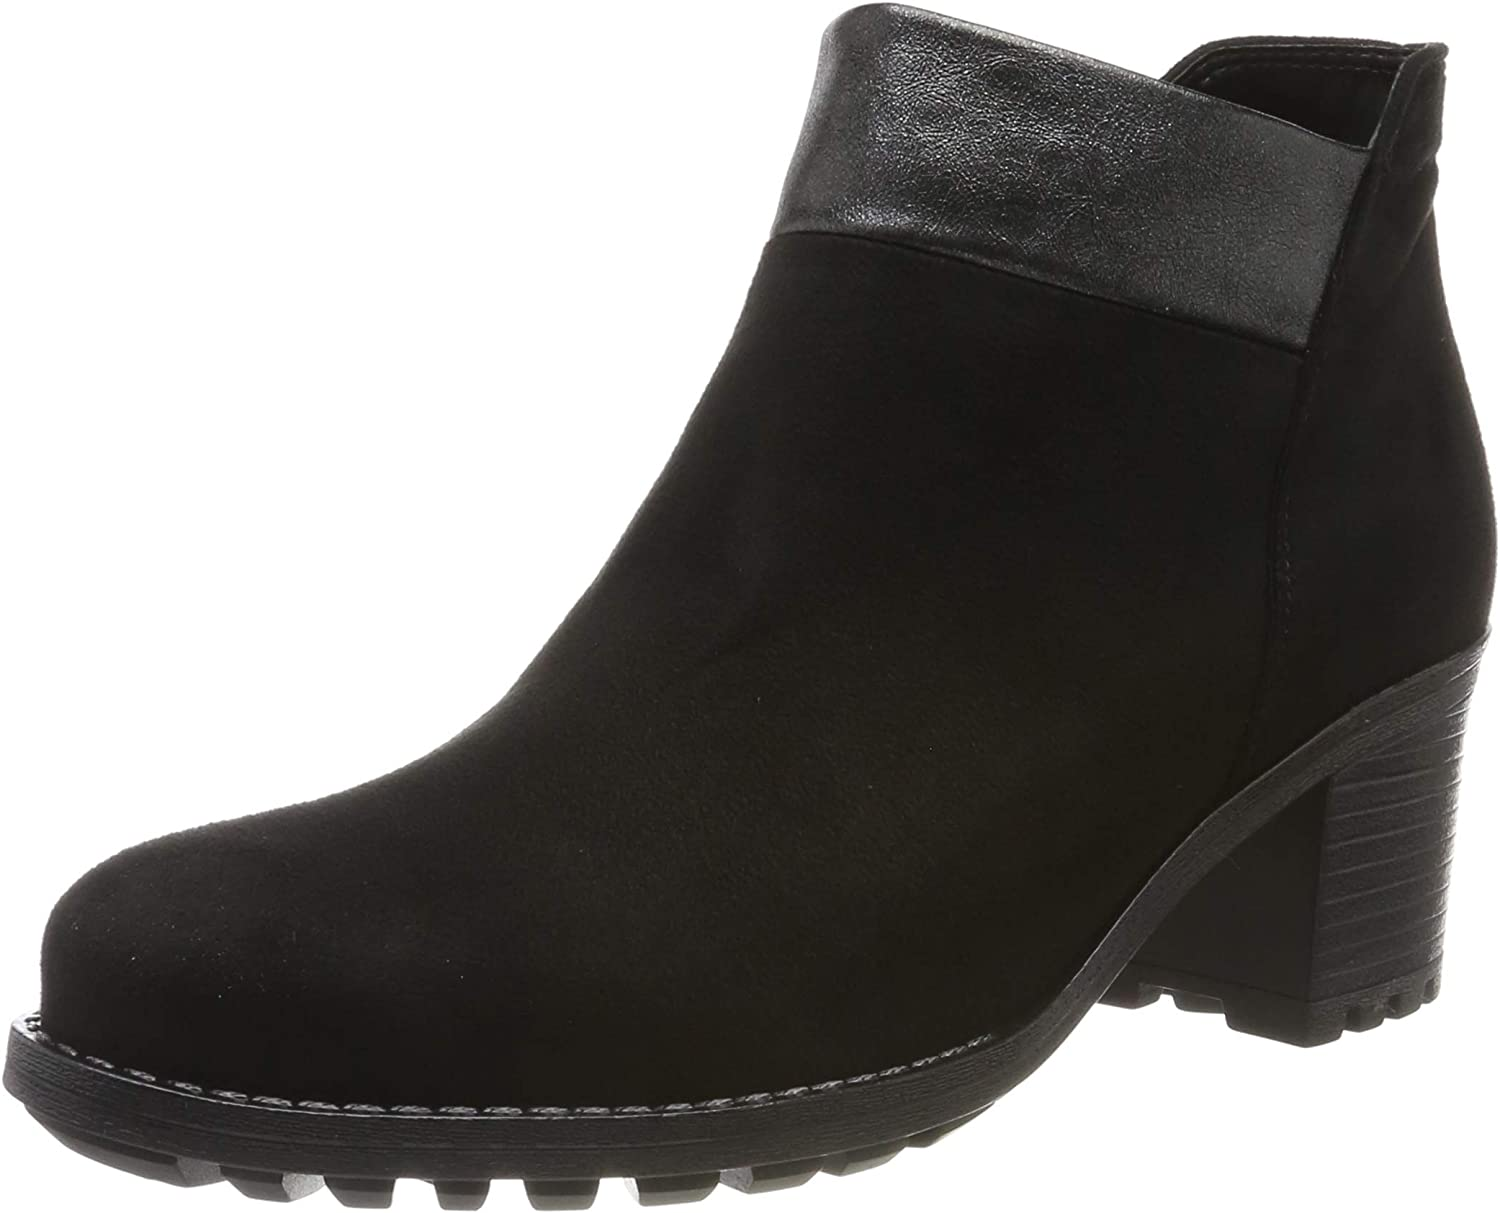 New mail order Jenny Women's Boots Ankle Superior